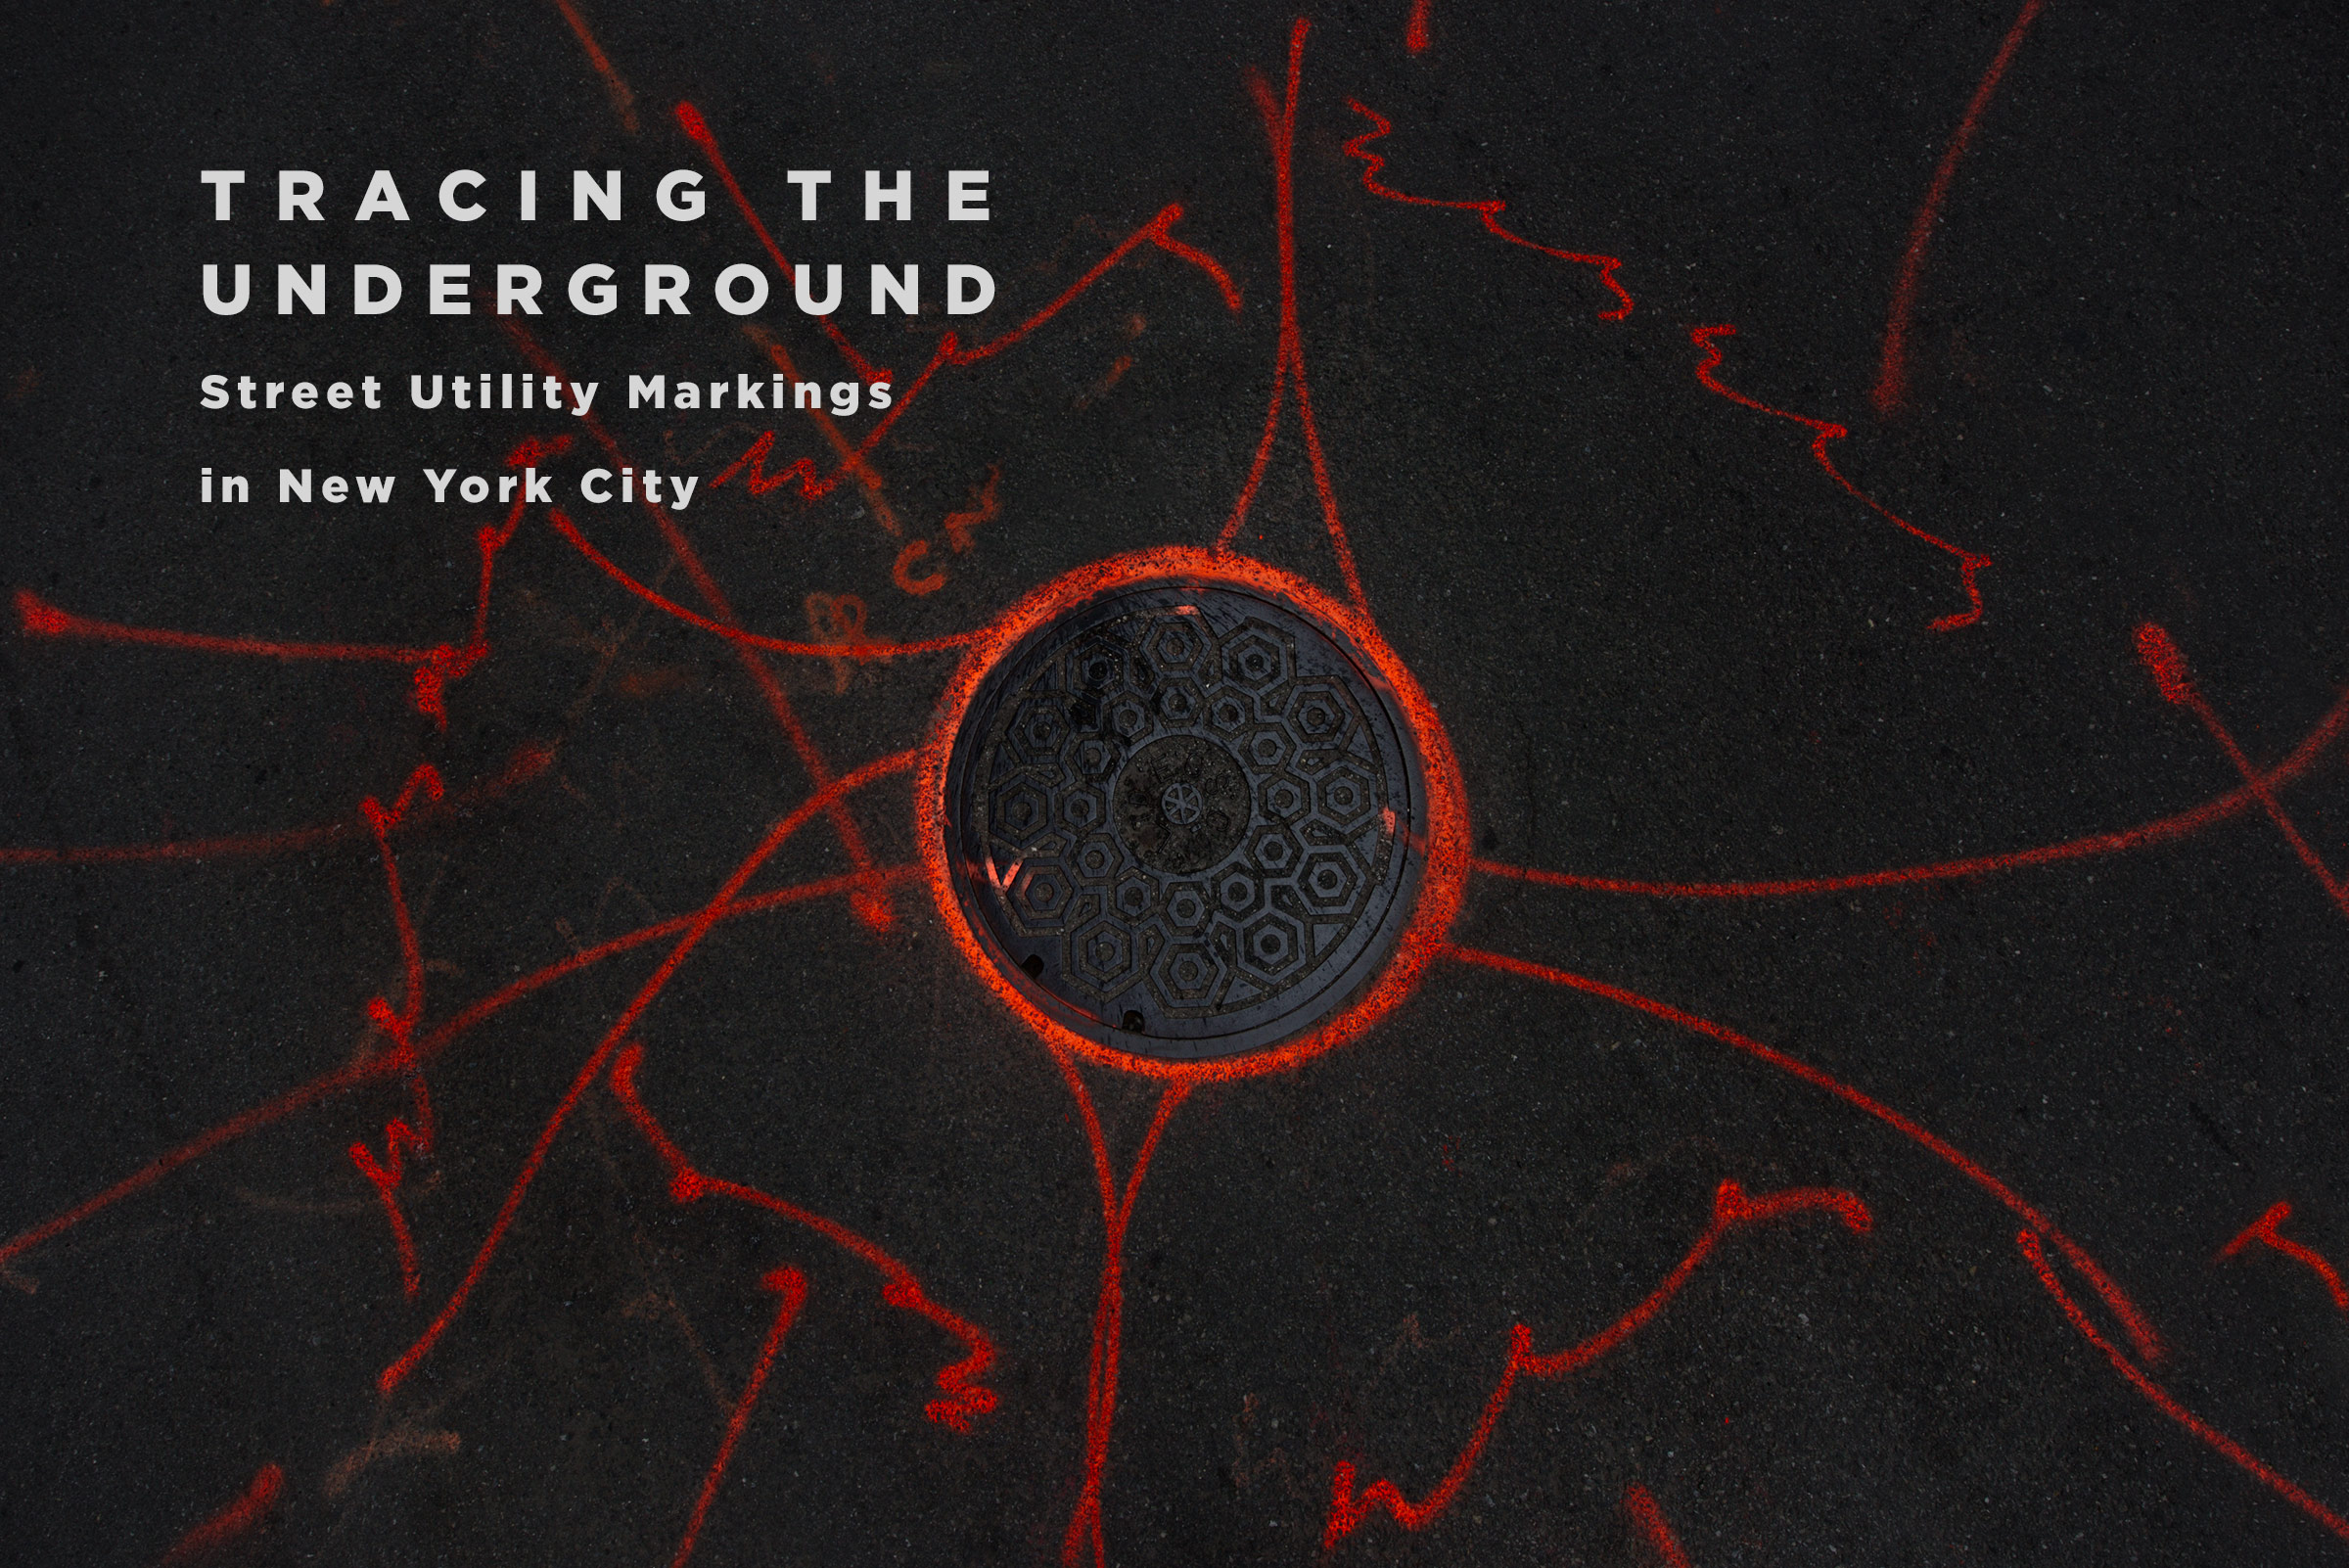 Tracing the Underground - Street Utility Markings in New York City